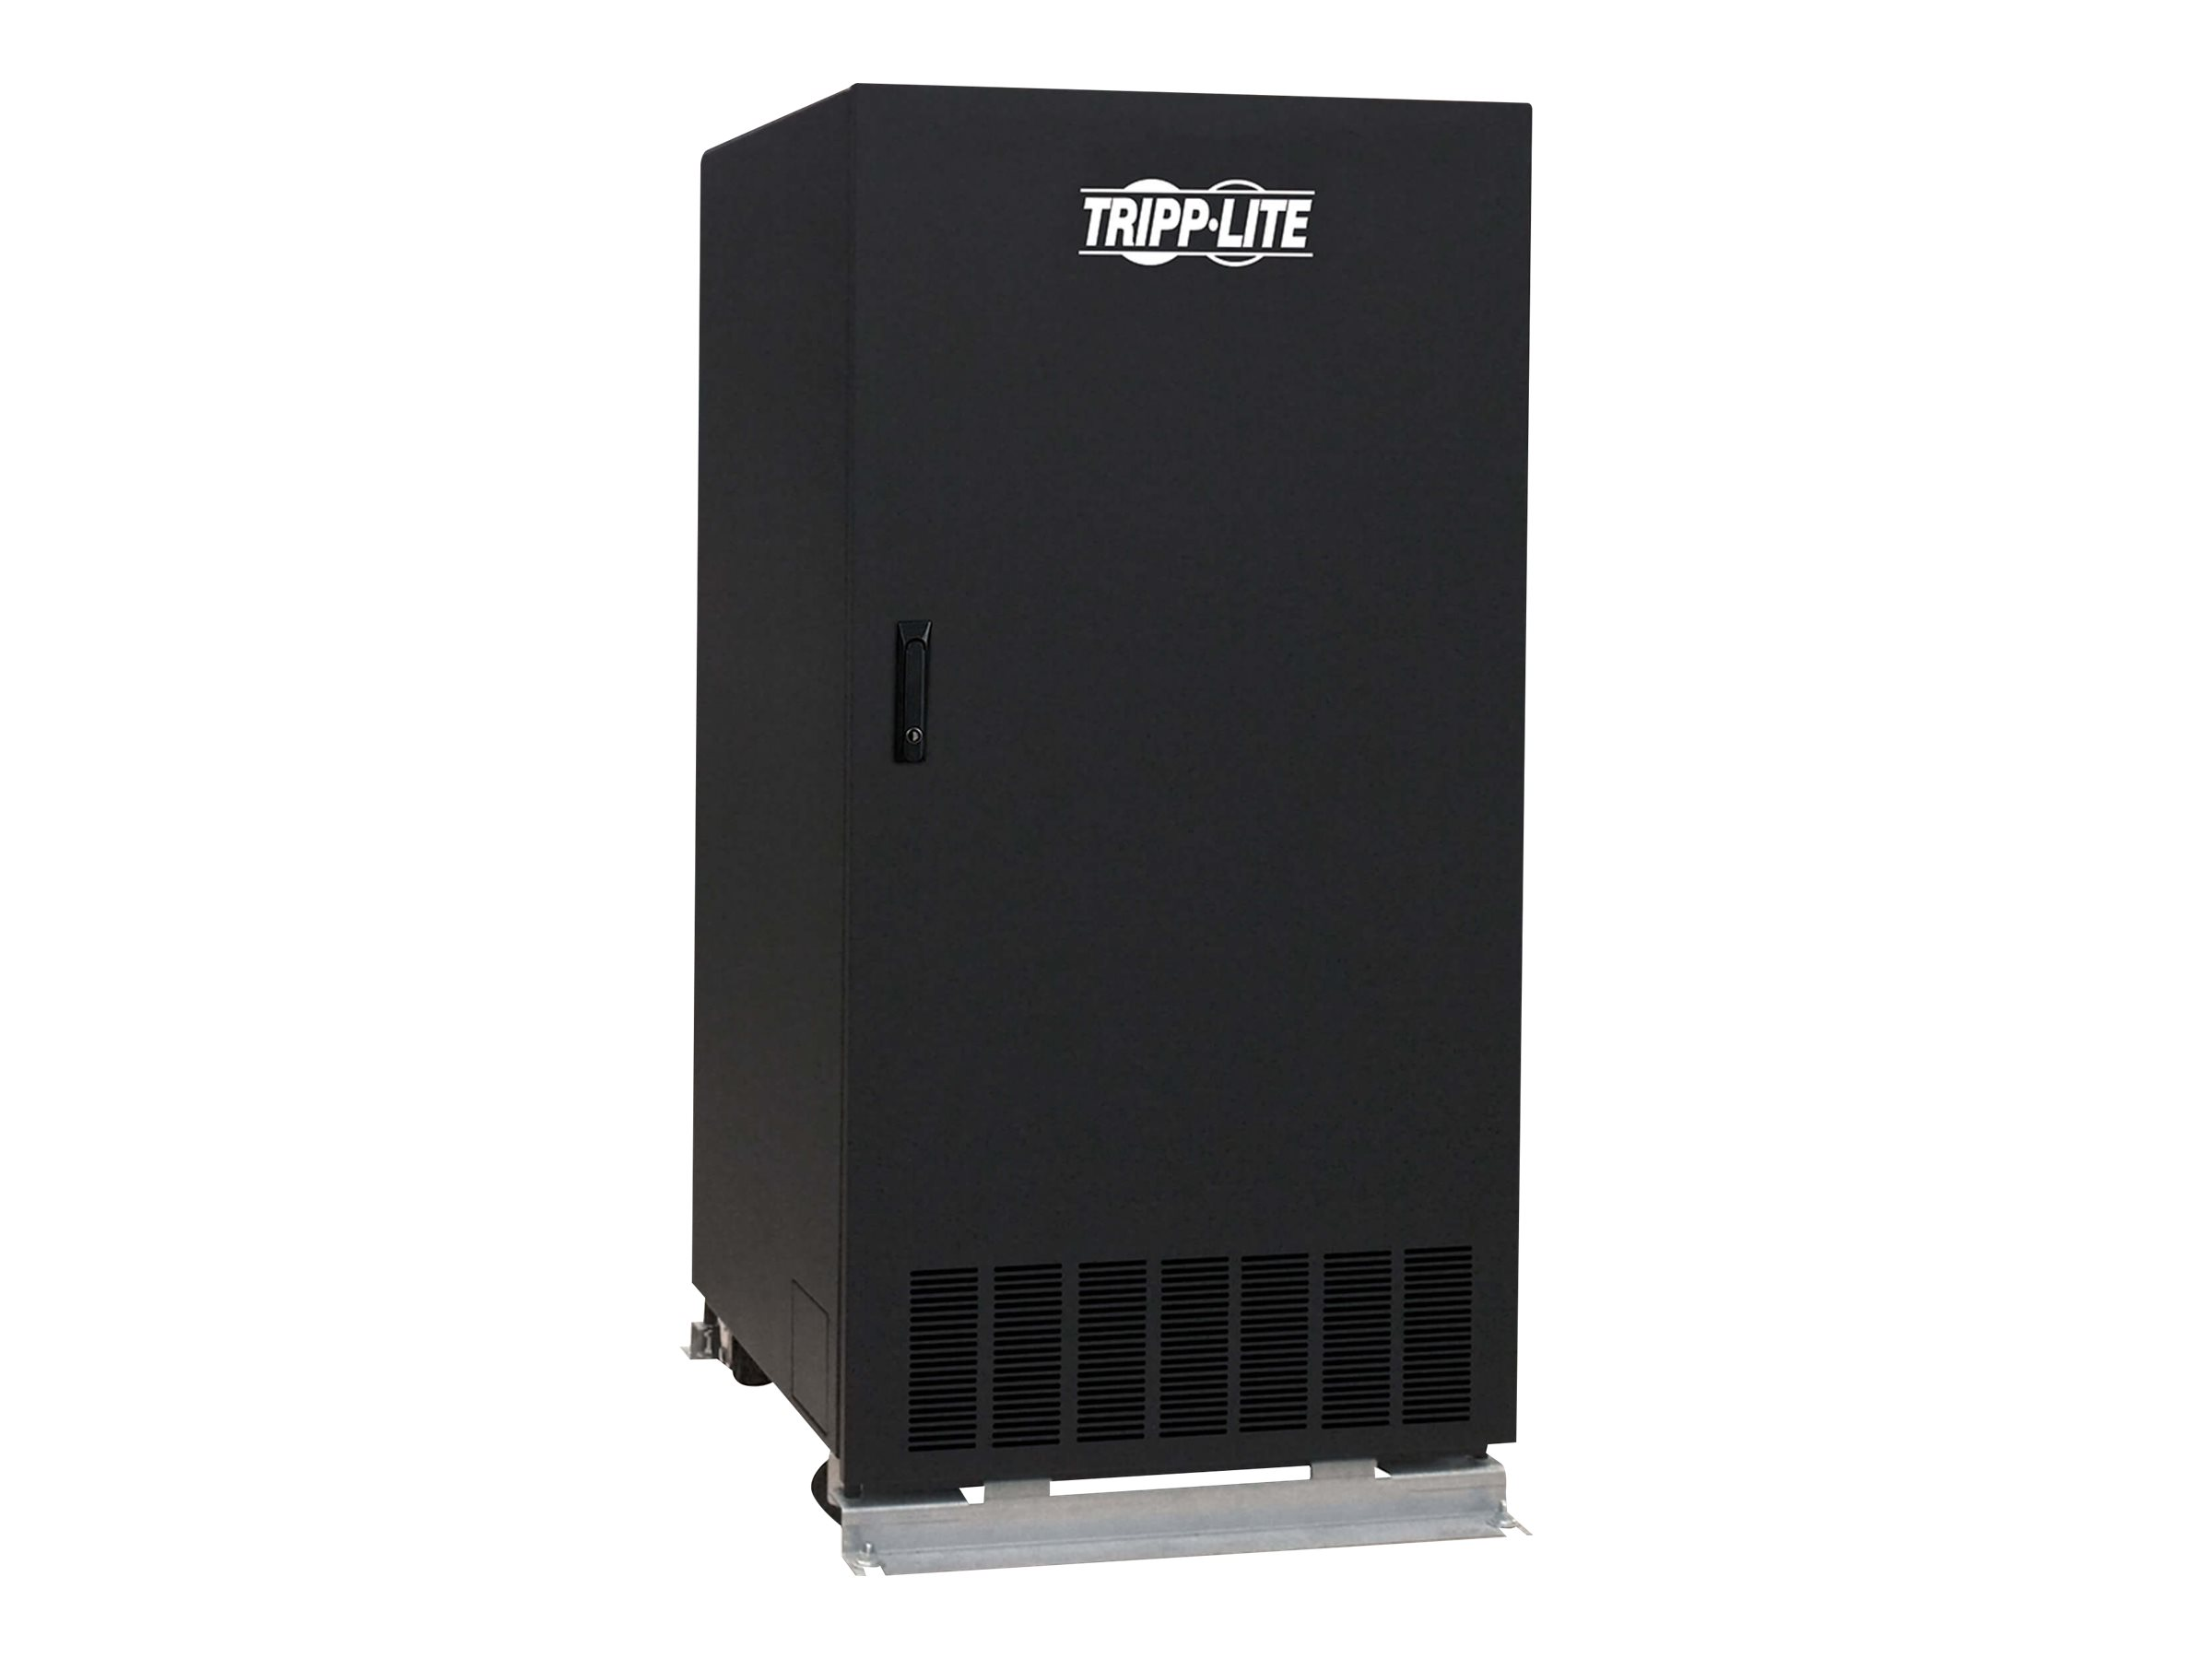 Tripp Lite UPS Battery Pack for SV-Series 3-Phase UPS, +/-120VDC, 1 Cabinet - Tower, TAA, No Batteries Included - batte…